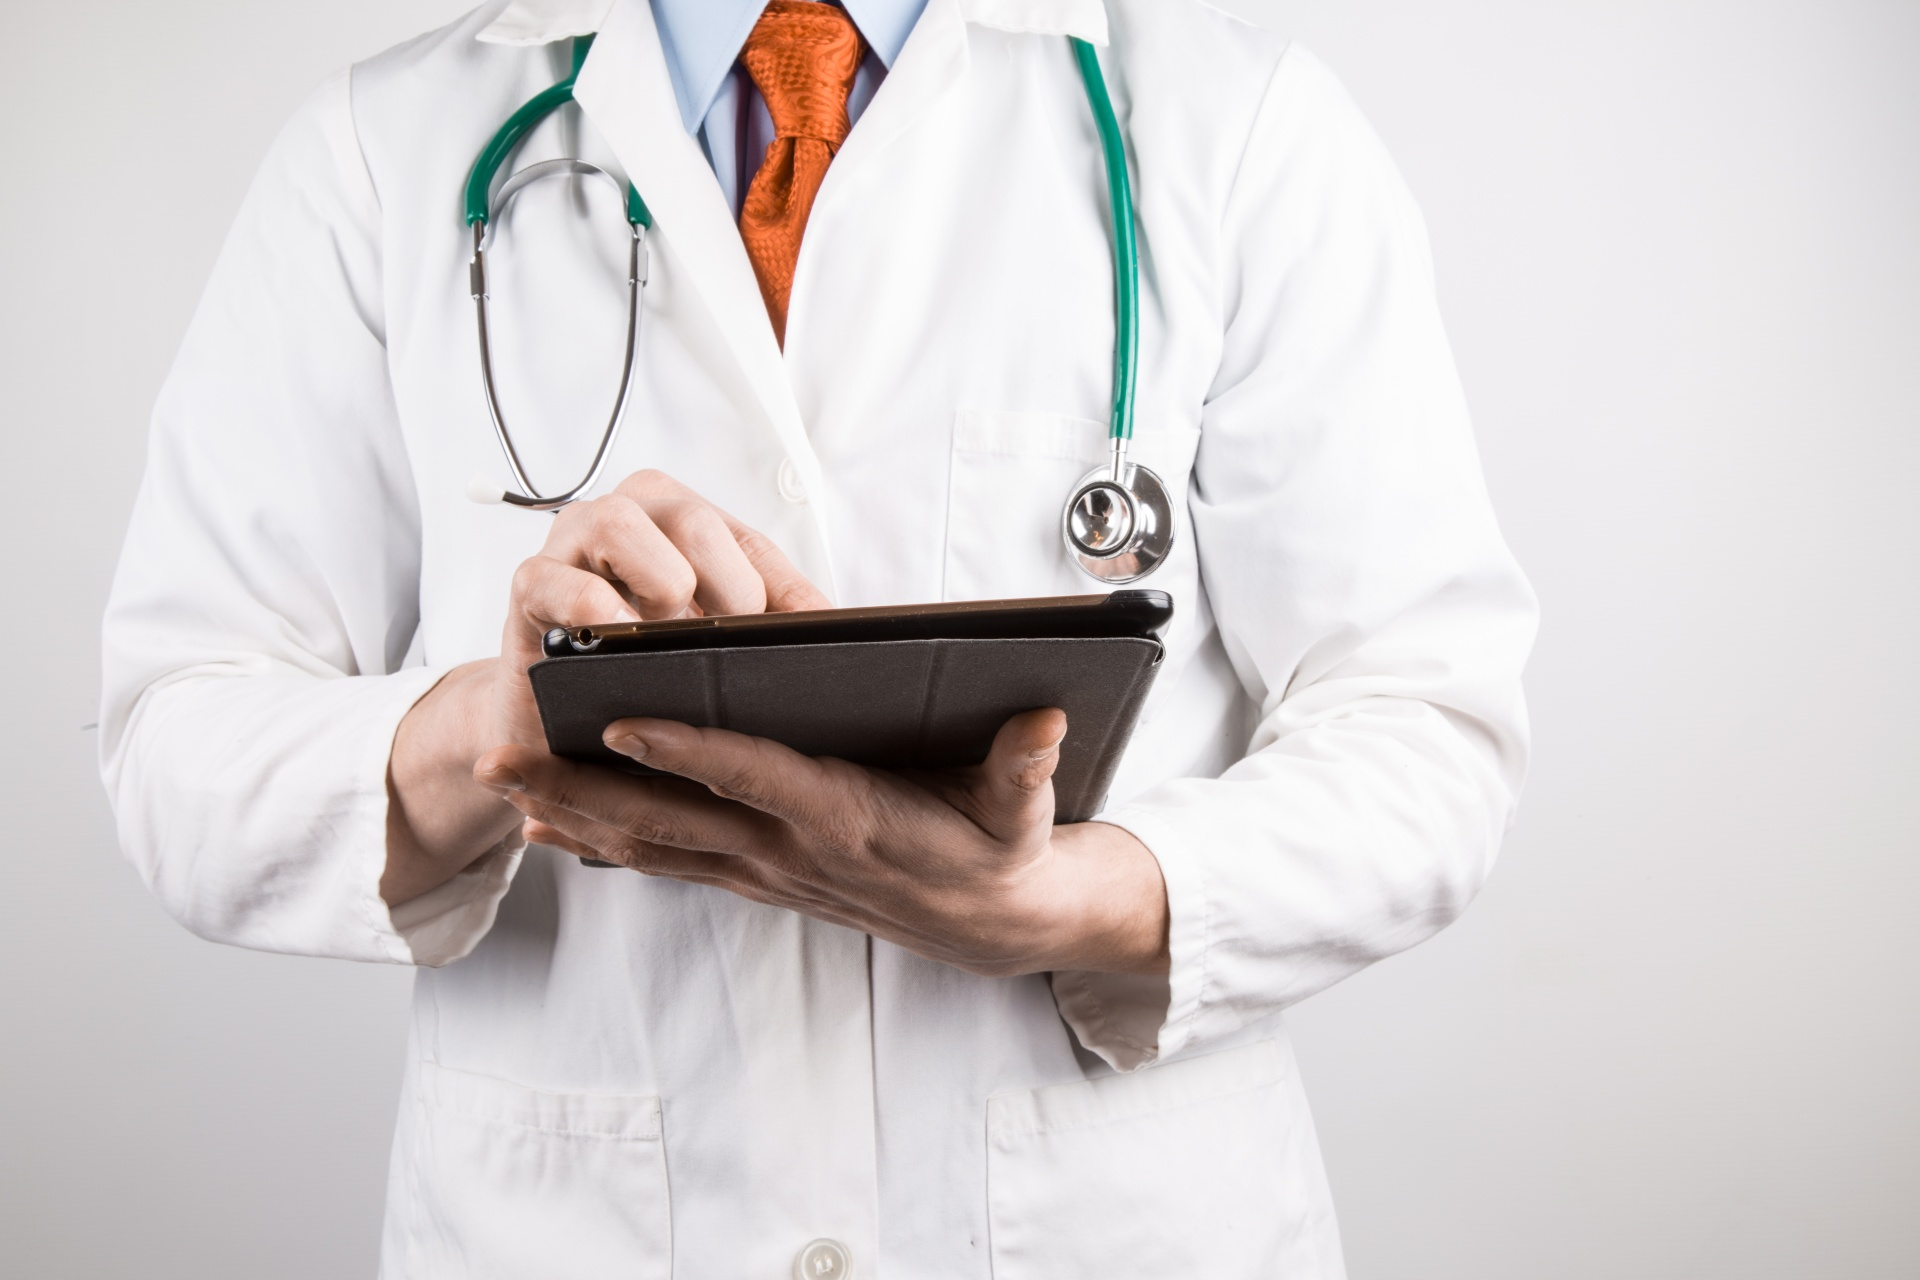 doctor-with-tablet-1461913089Jcx.jpg